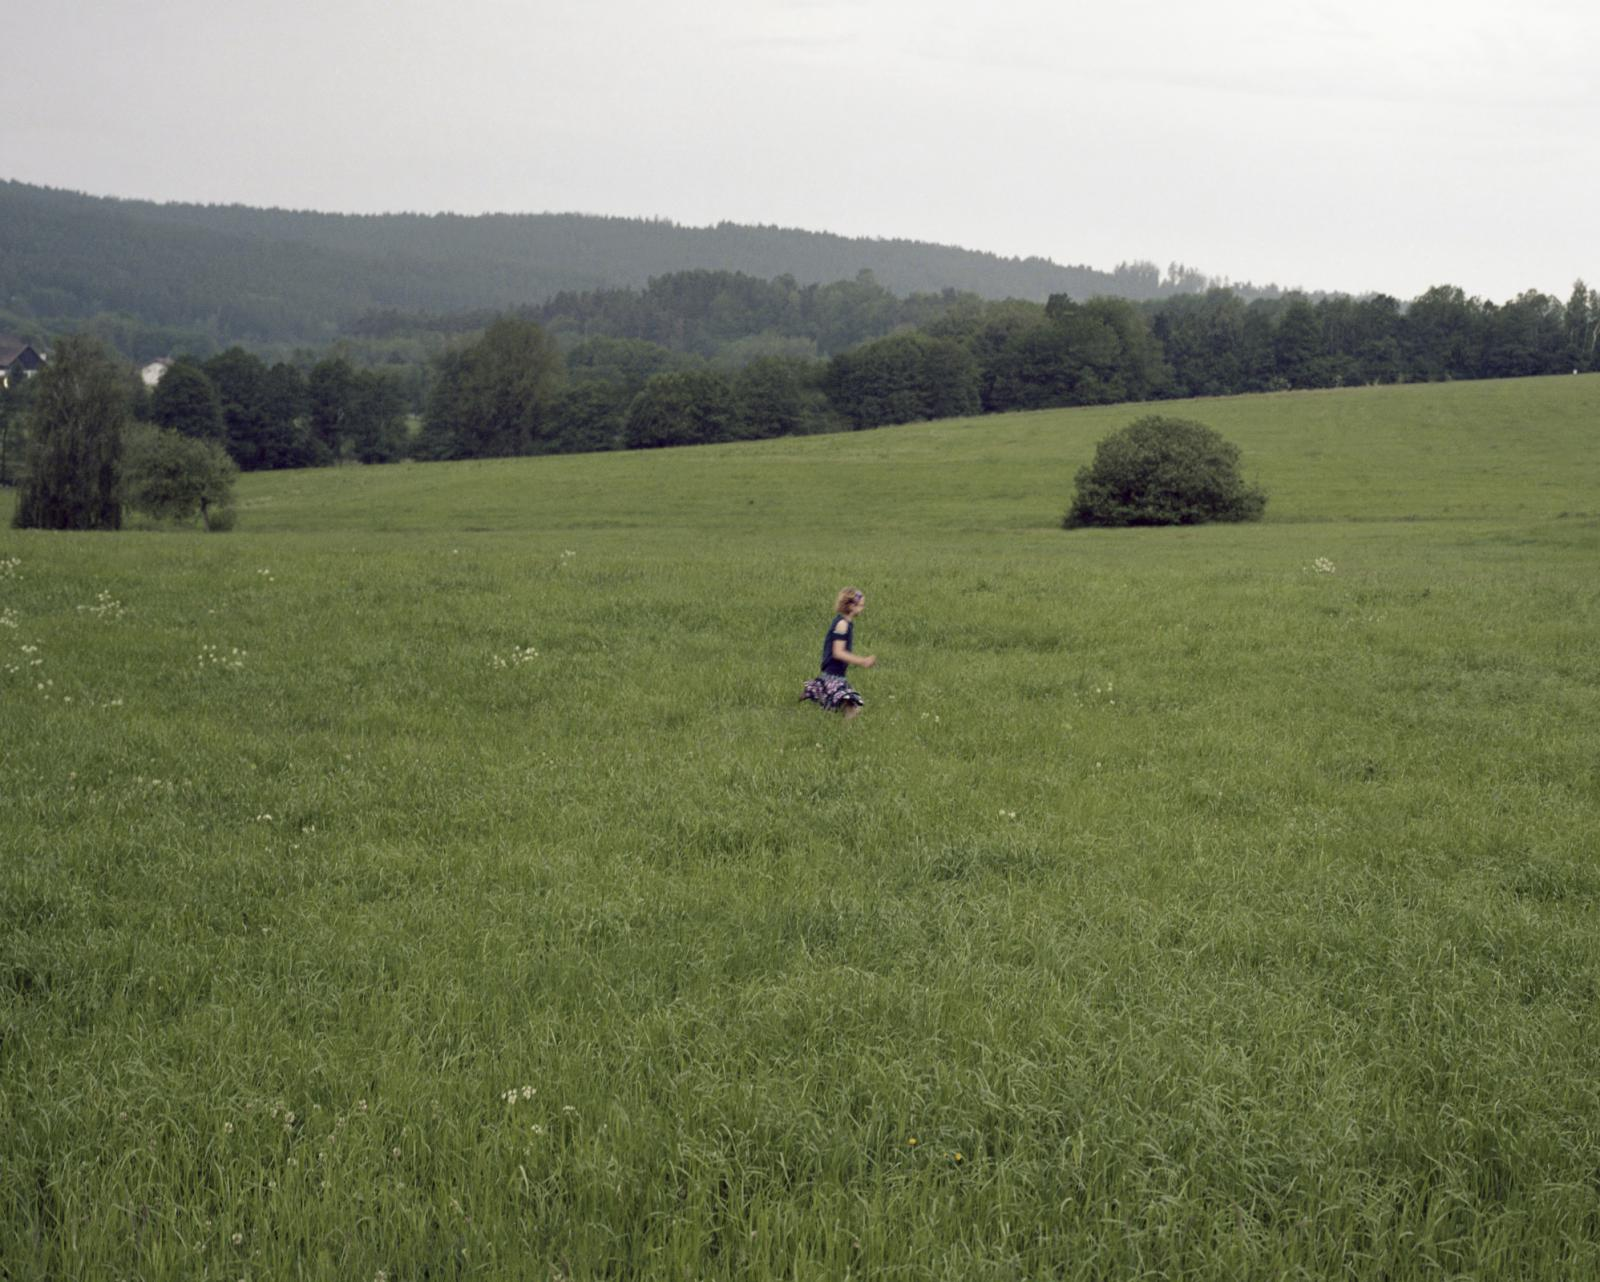 Germany, Bad Kotzting. A child run across a field during a religious procession.